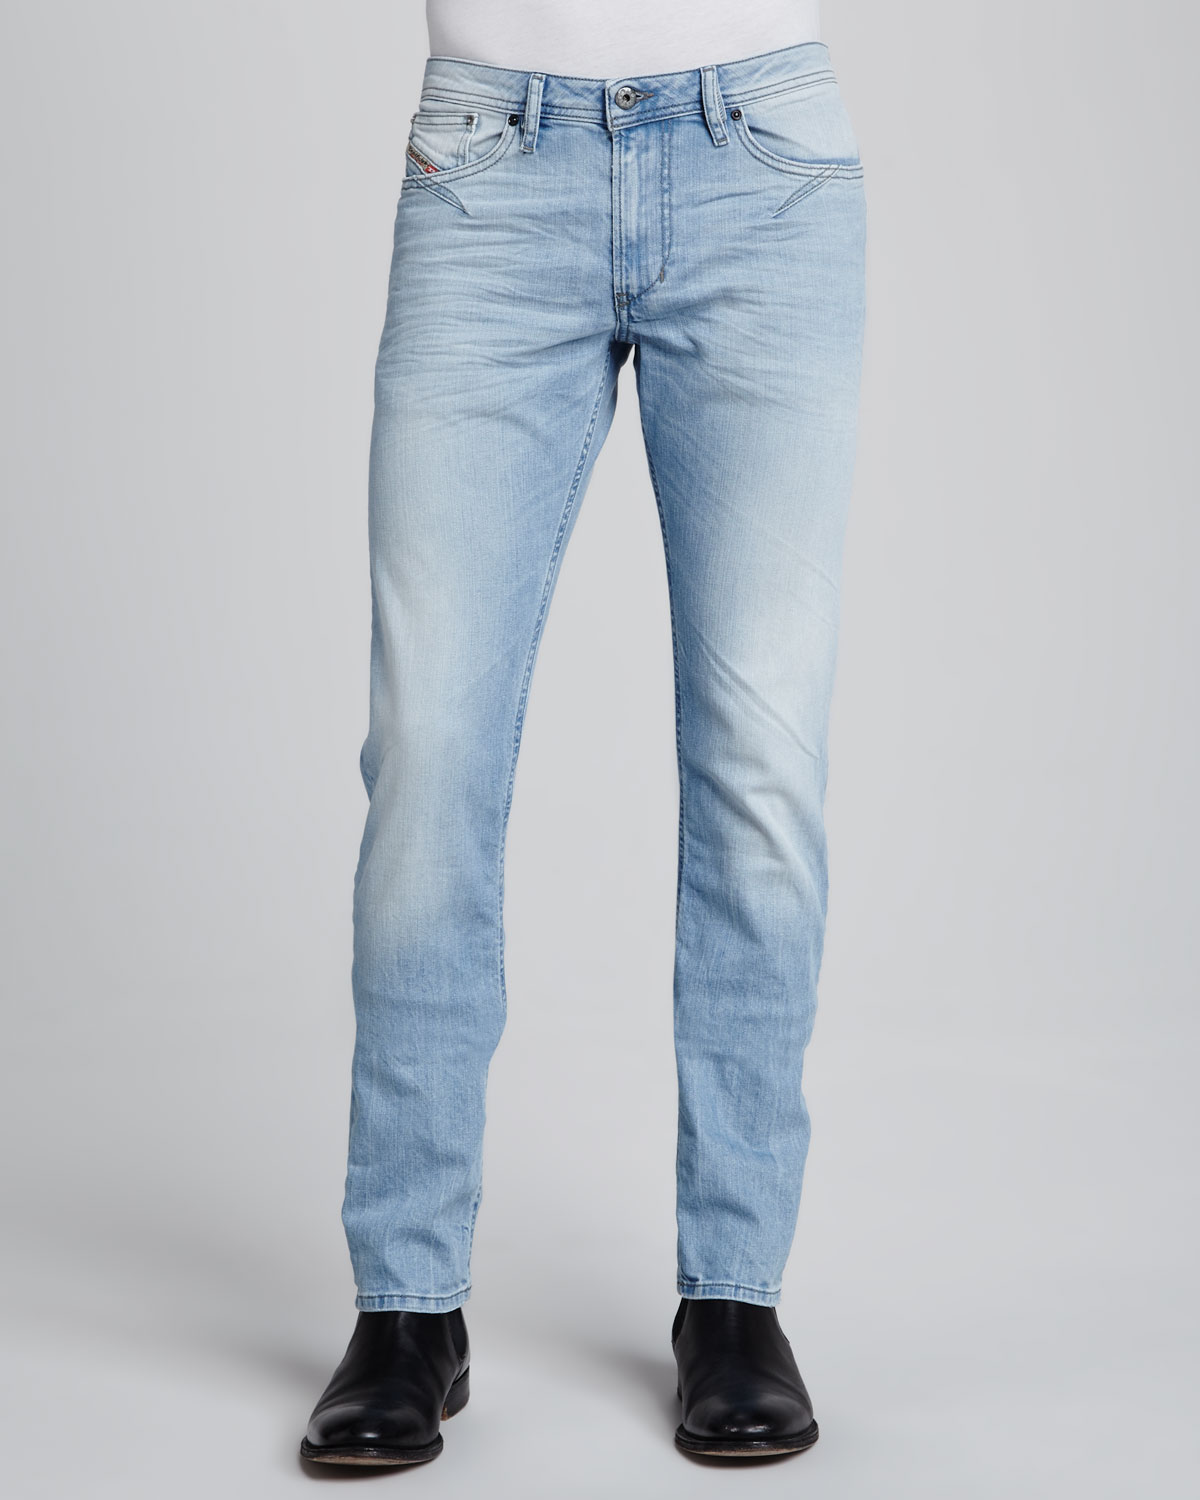 Mens Light Blue Skinny Jeans - Legends Jeans